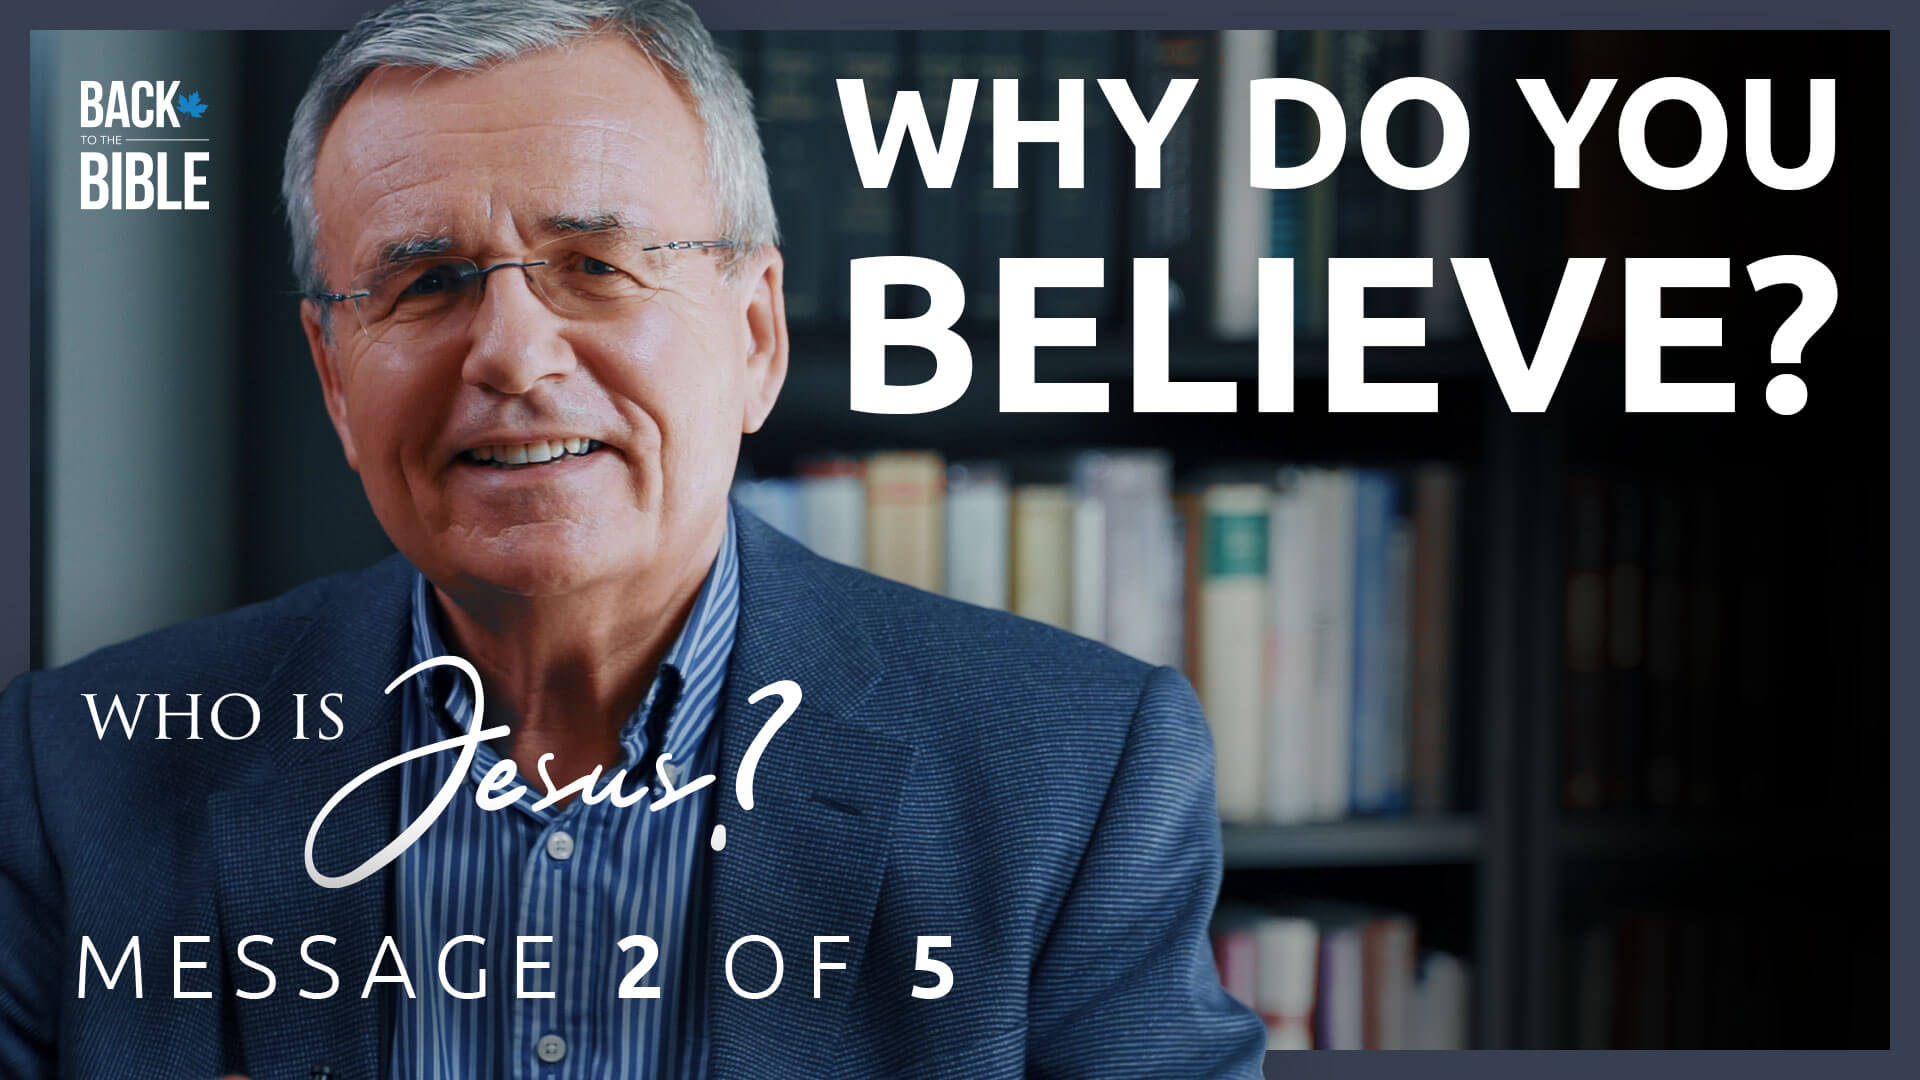 Who Do You Believe? - Who is Jesus? - Dr. John Neufeld - Back to the Bible Canada